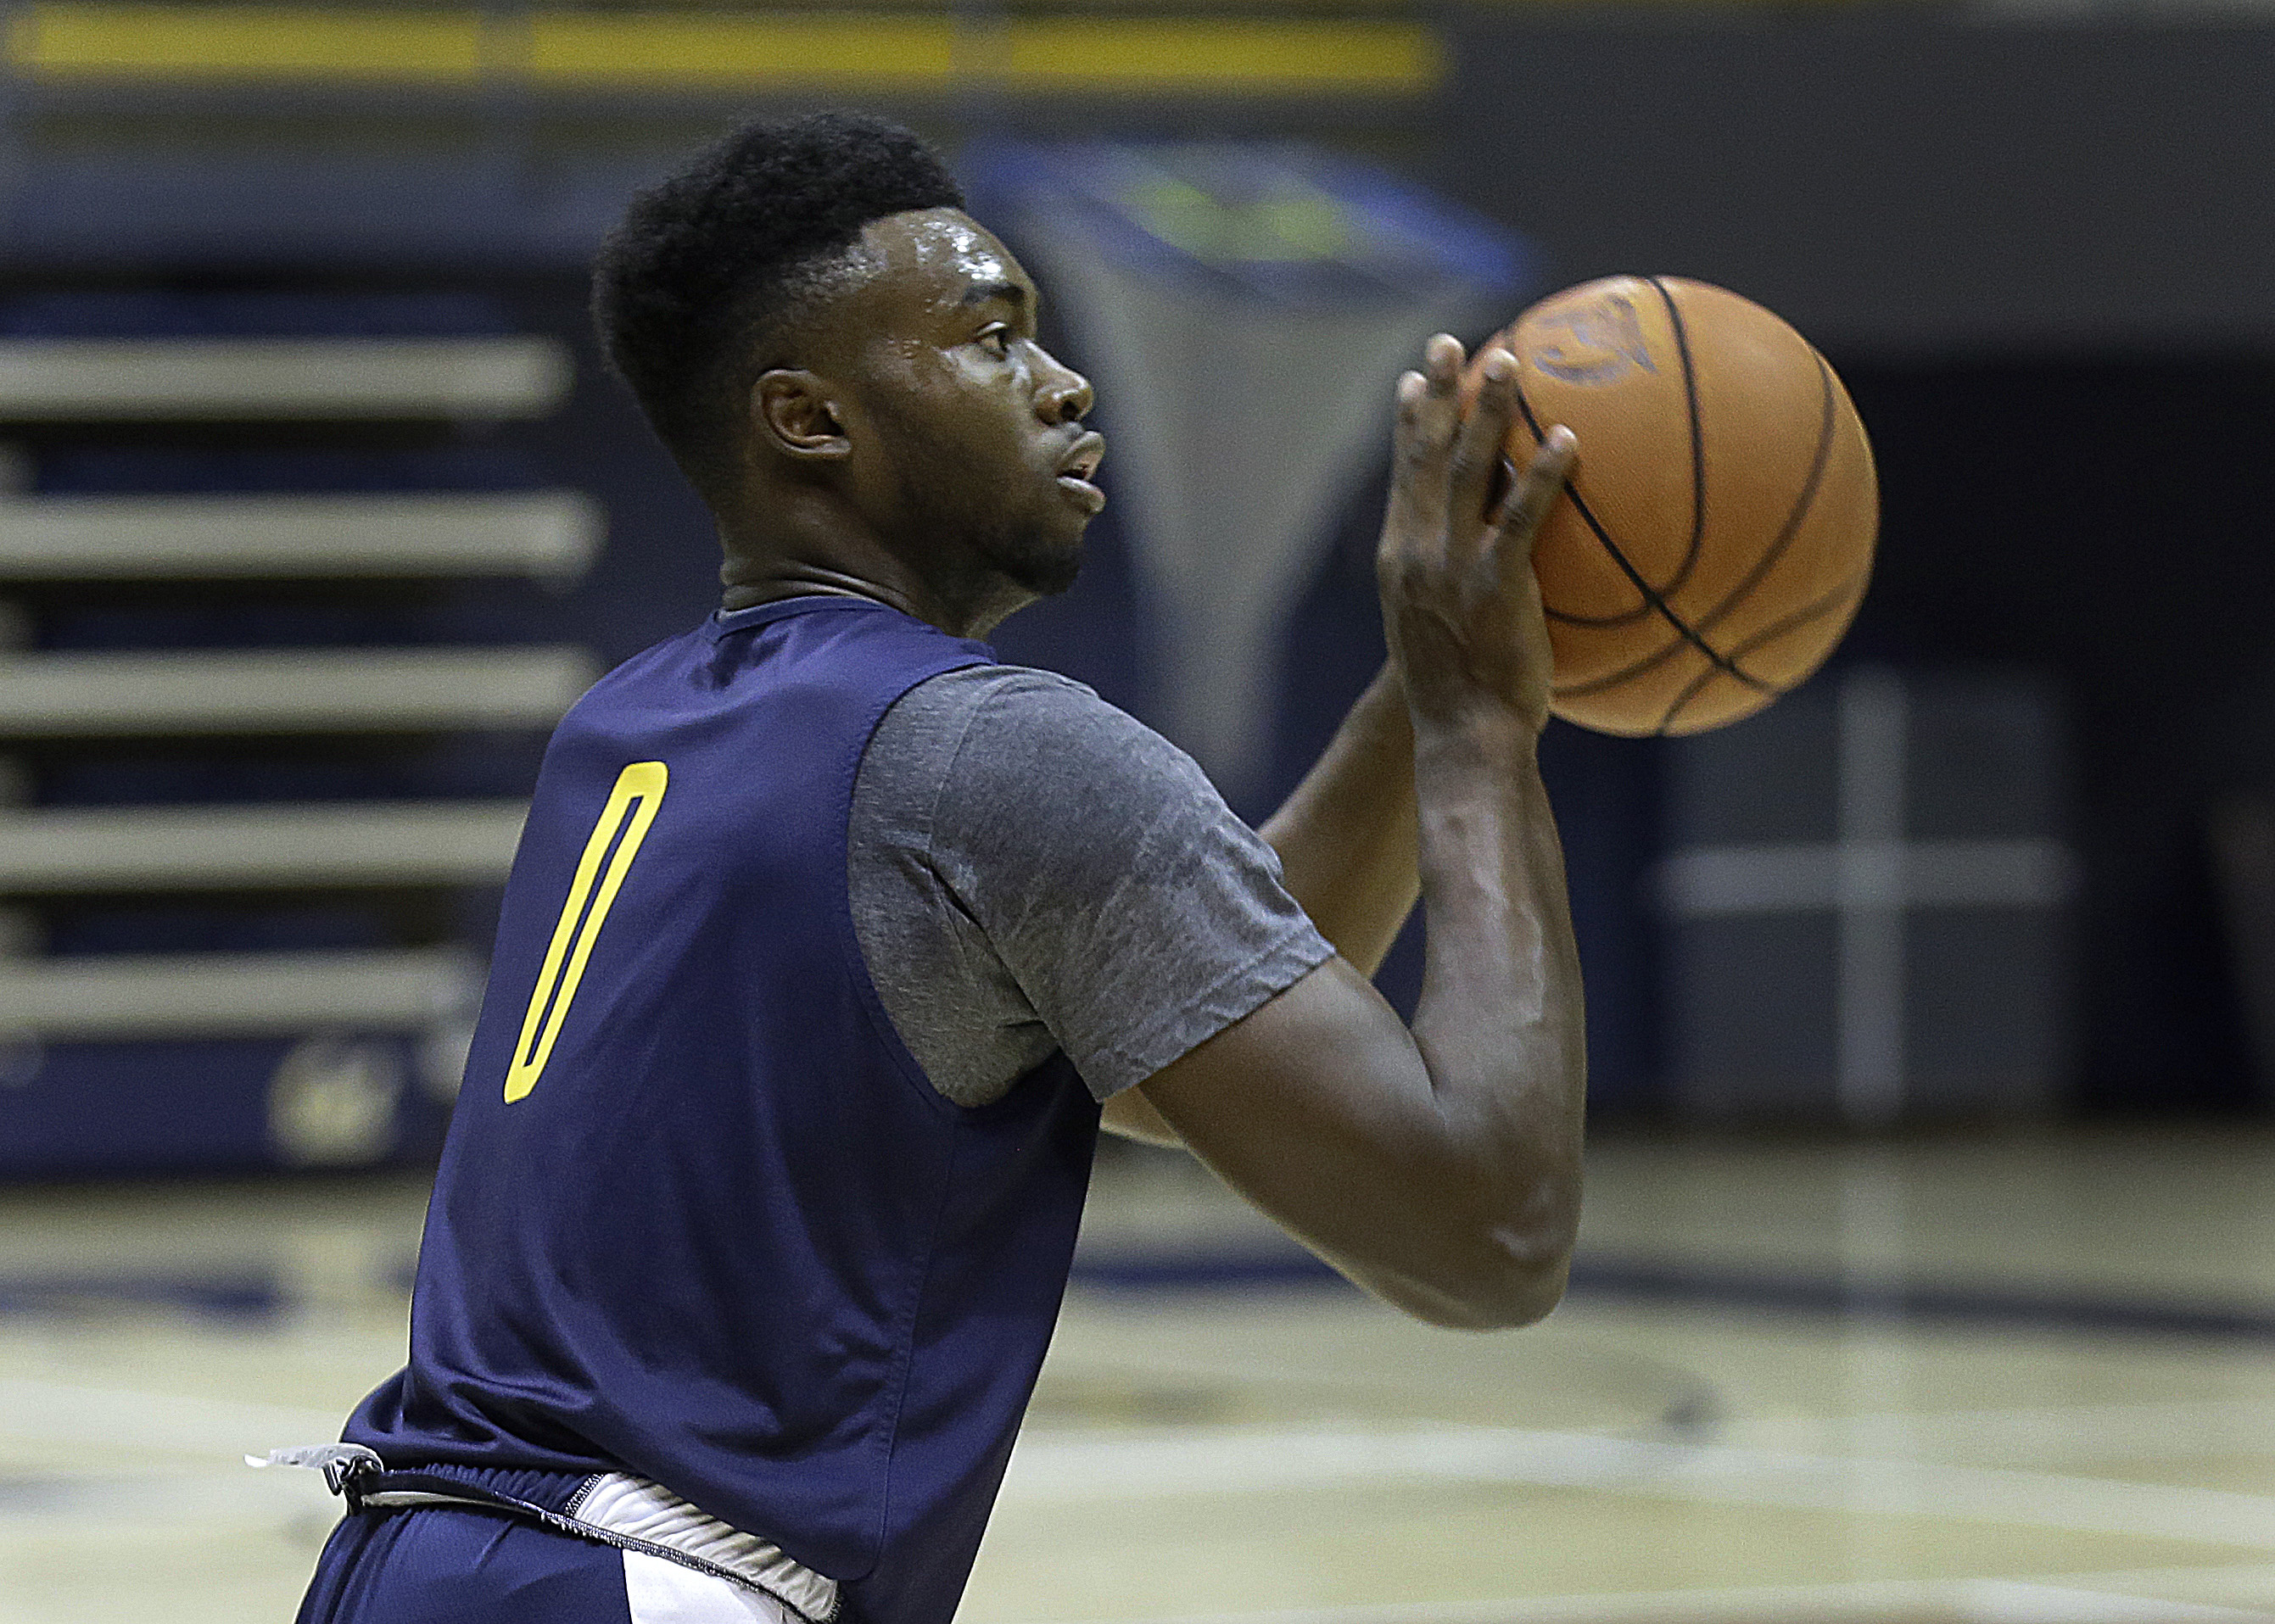 FILE - In this Oct. 7, 2015, file photo, California's Jaylen Brown shoots during basketball practice in Berkeley, Calif. Brown is expected to be one of the top freshmen in the country this season.. (AP Photo/Ben Margot, File)